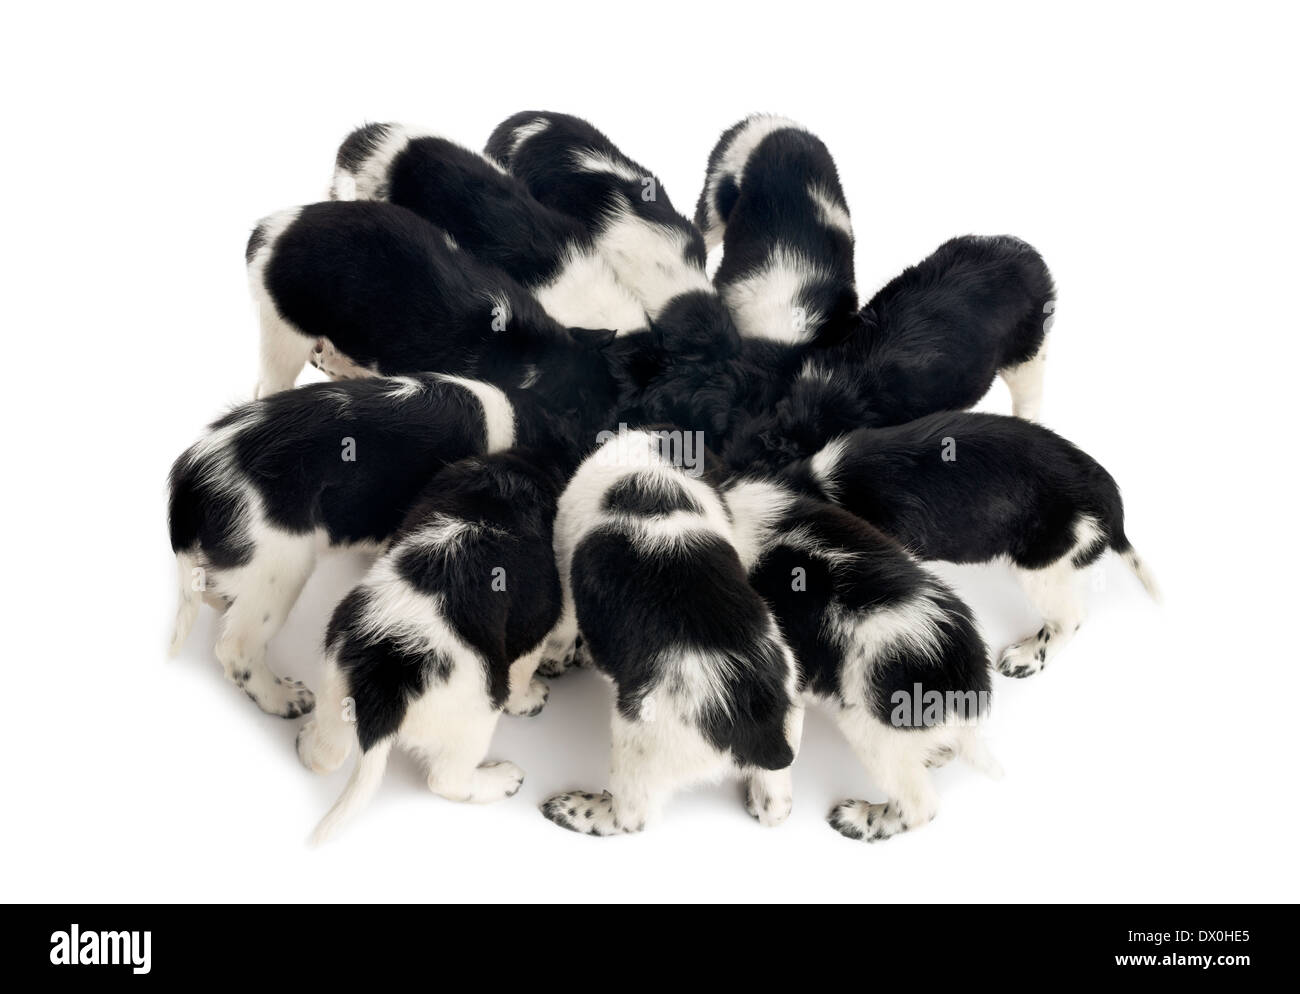 Stabyhoun puppies eating together against white background - Stock Image